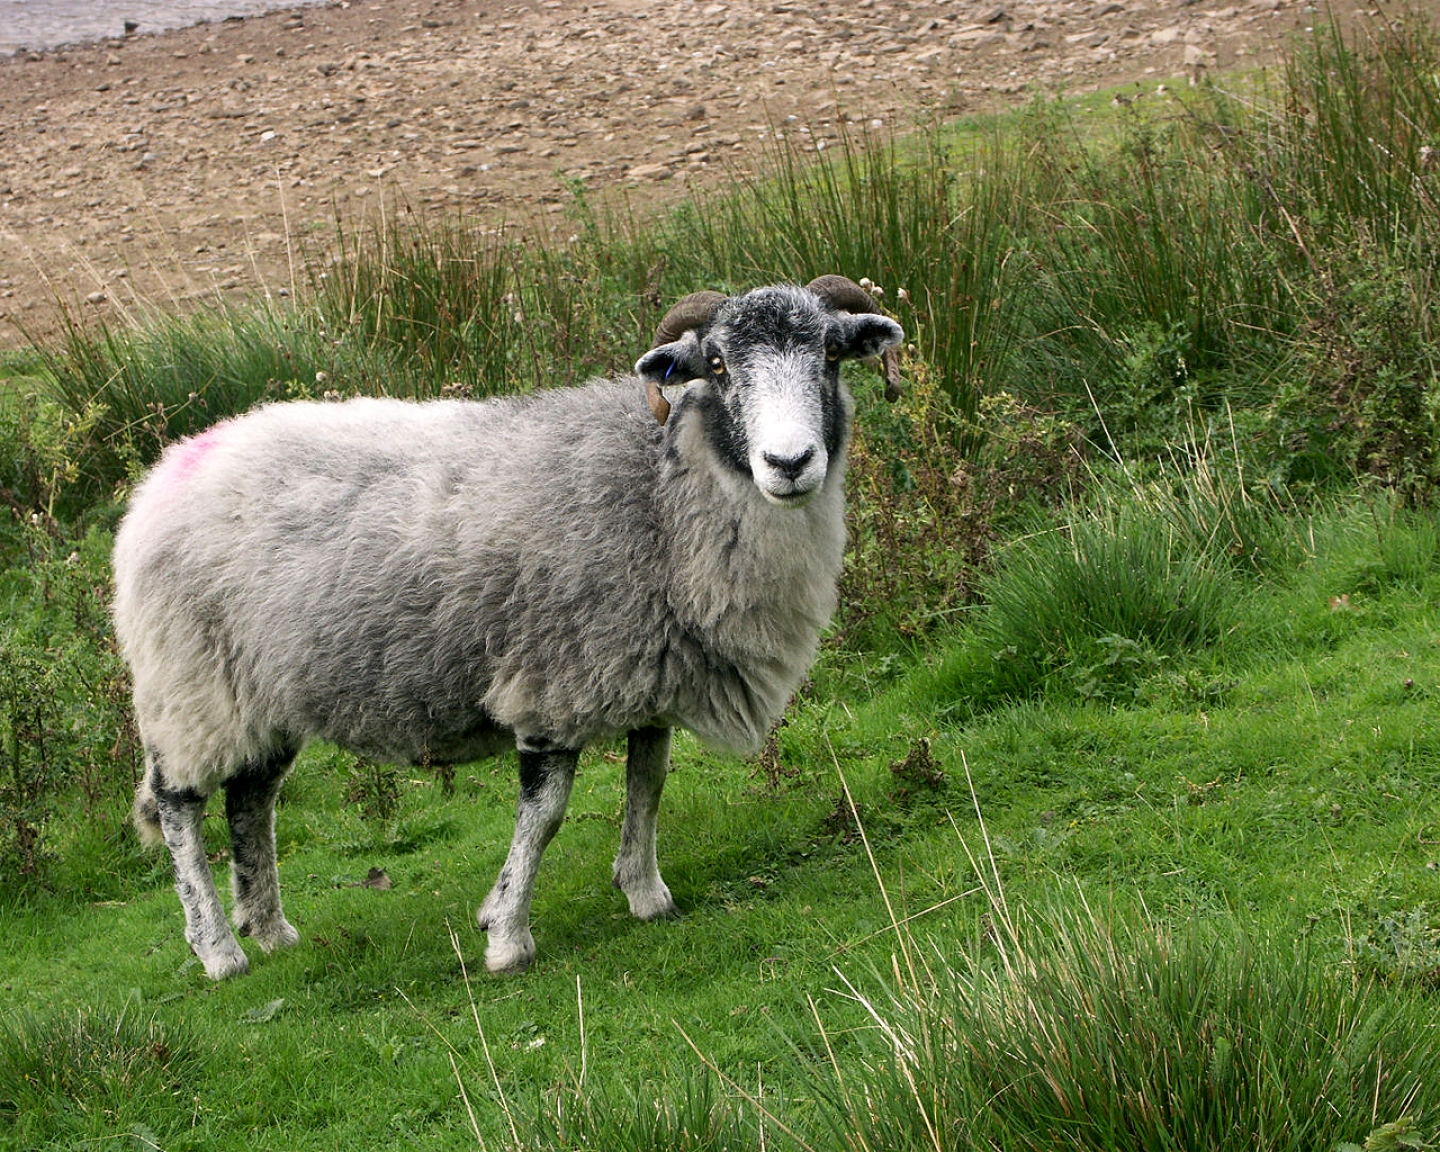 Widescreen Wallpapers of Sheep - Best Pictures